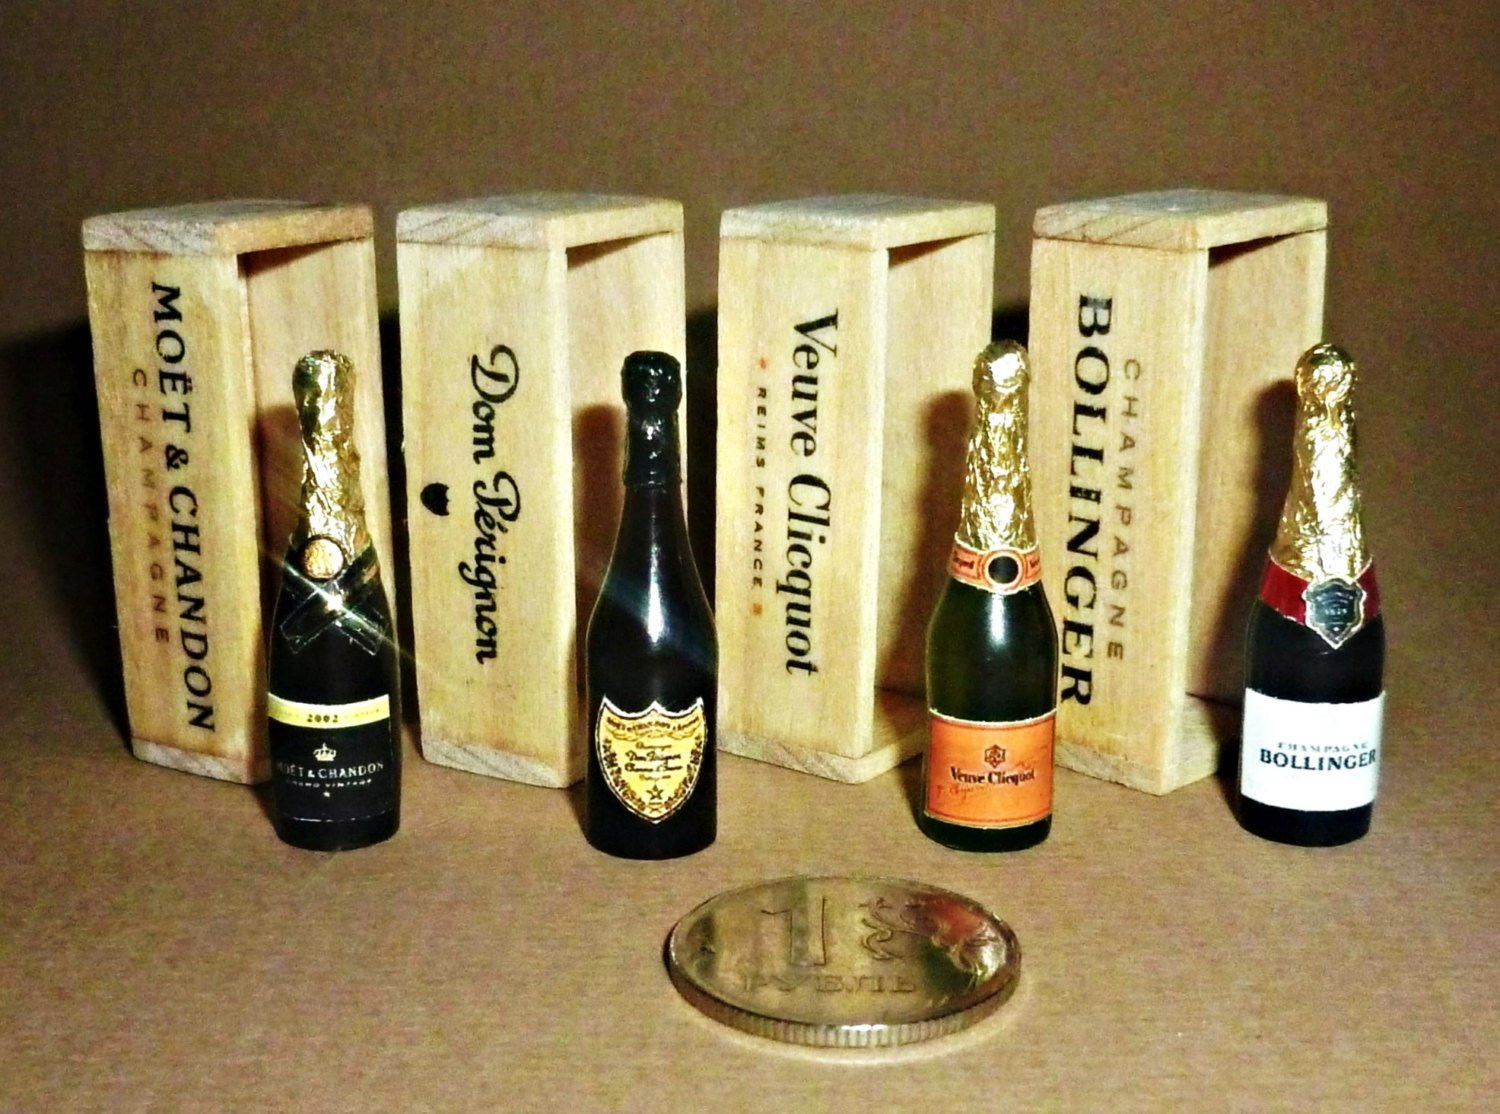 Dollhouse miniature 1:12 Champagne and wine. Champagne bottle in a wooden box.